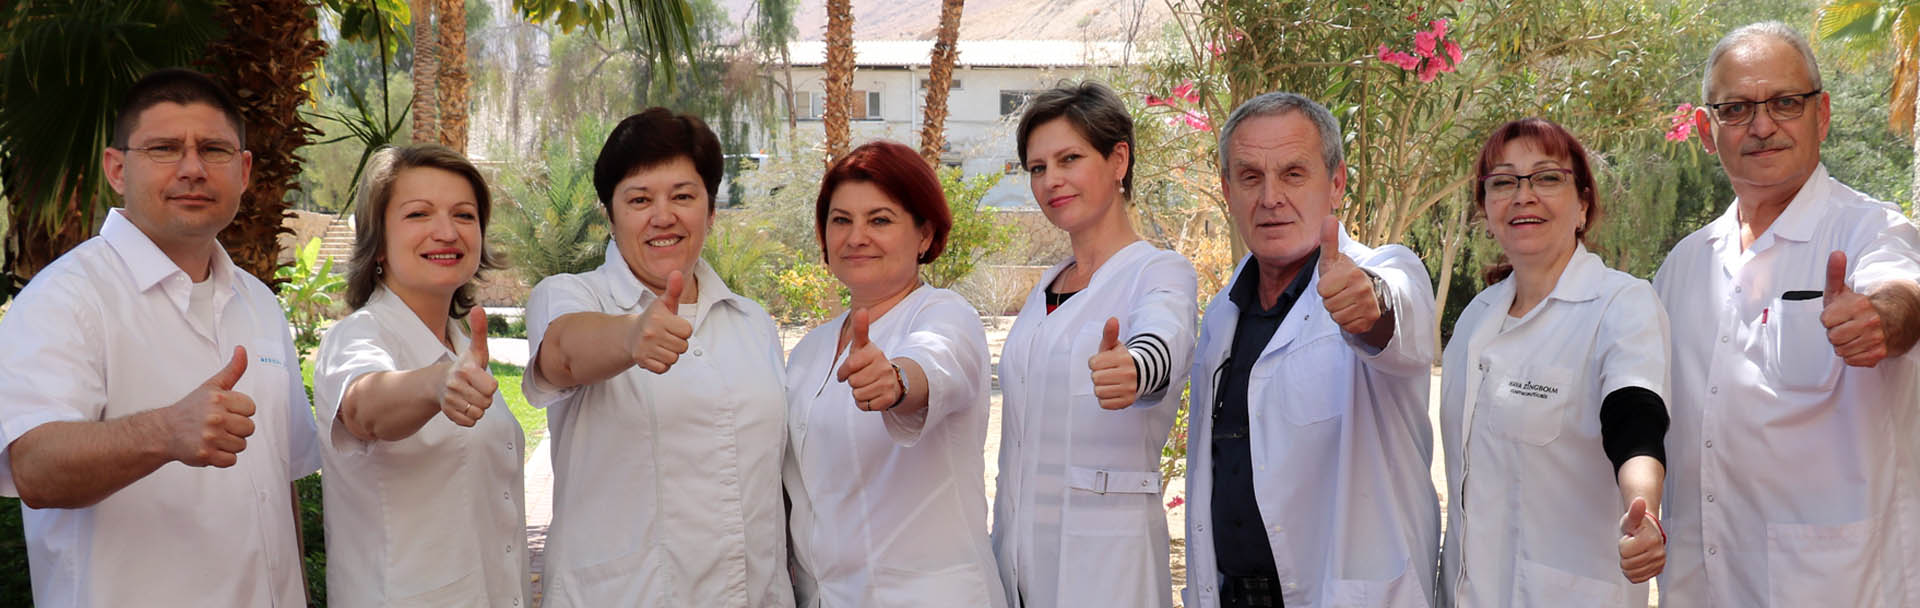 Avantgarde Clinics Dead Sea Dream team 1.jpg